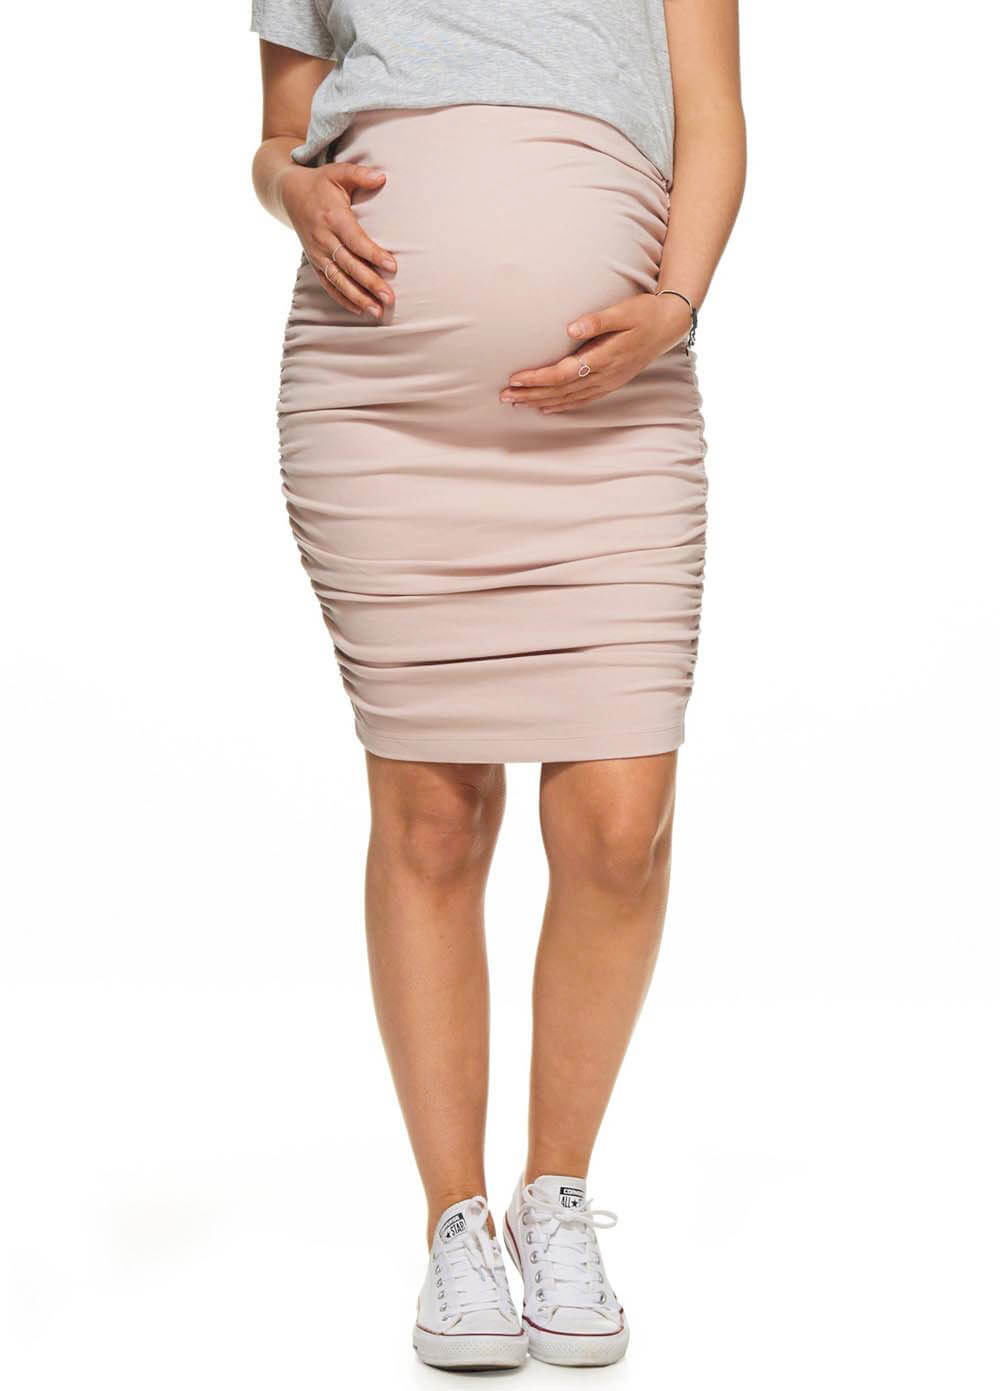 62a2fa2ef2485 Count Your Blessings Maternity Skirt in Pink by Bae The Label